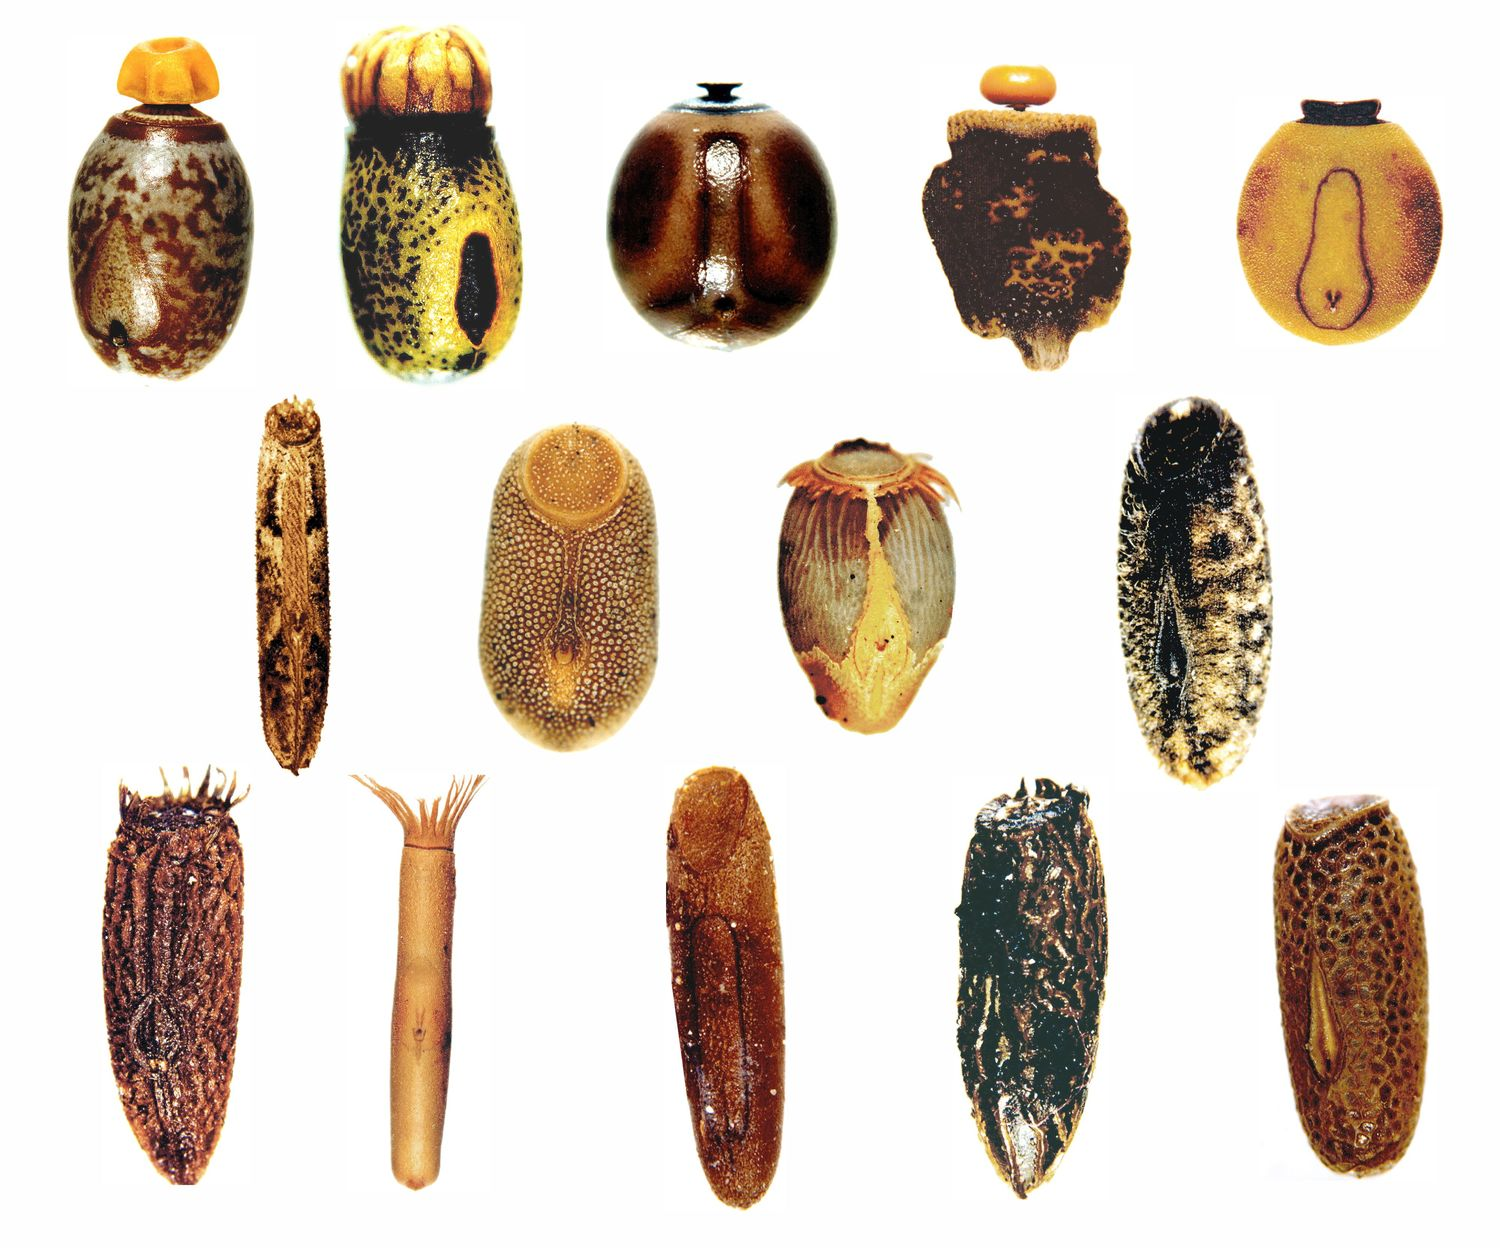 Diversity of stick insect eggs: In most cases, the seed-like hard-shelled eggs are just dropped to the ground (upper row) where they are carried away by ants due to a nutritious appendage, eggs of some species are glued to plants (middle row) or inserted into soil (bottom row).